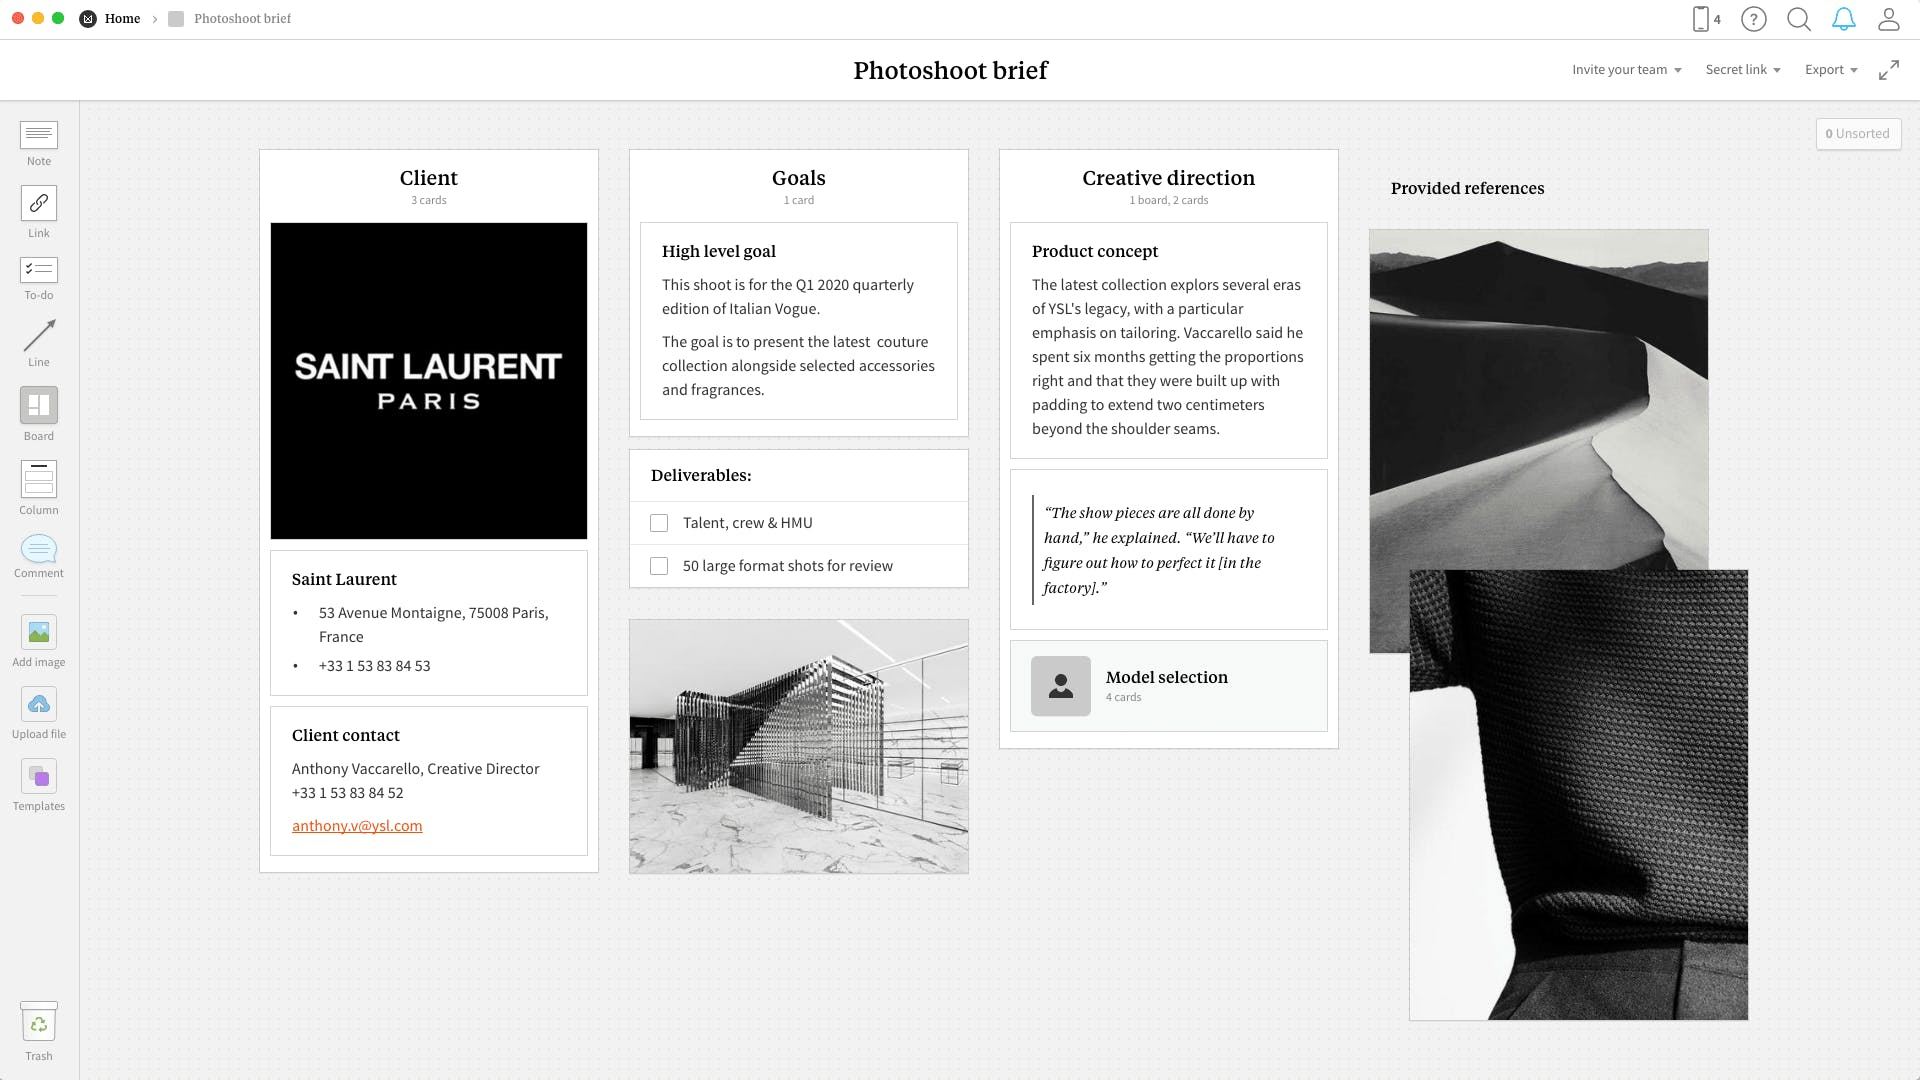 Completed Photoshoot Brief template in Milanote app